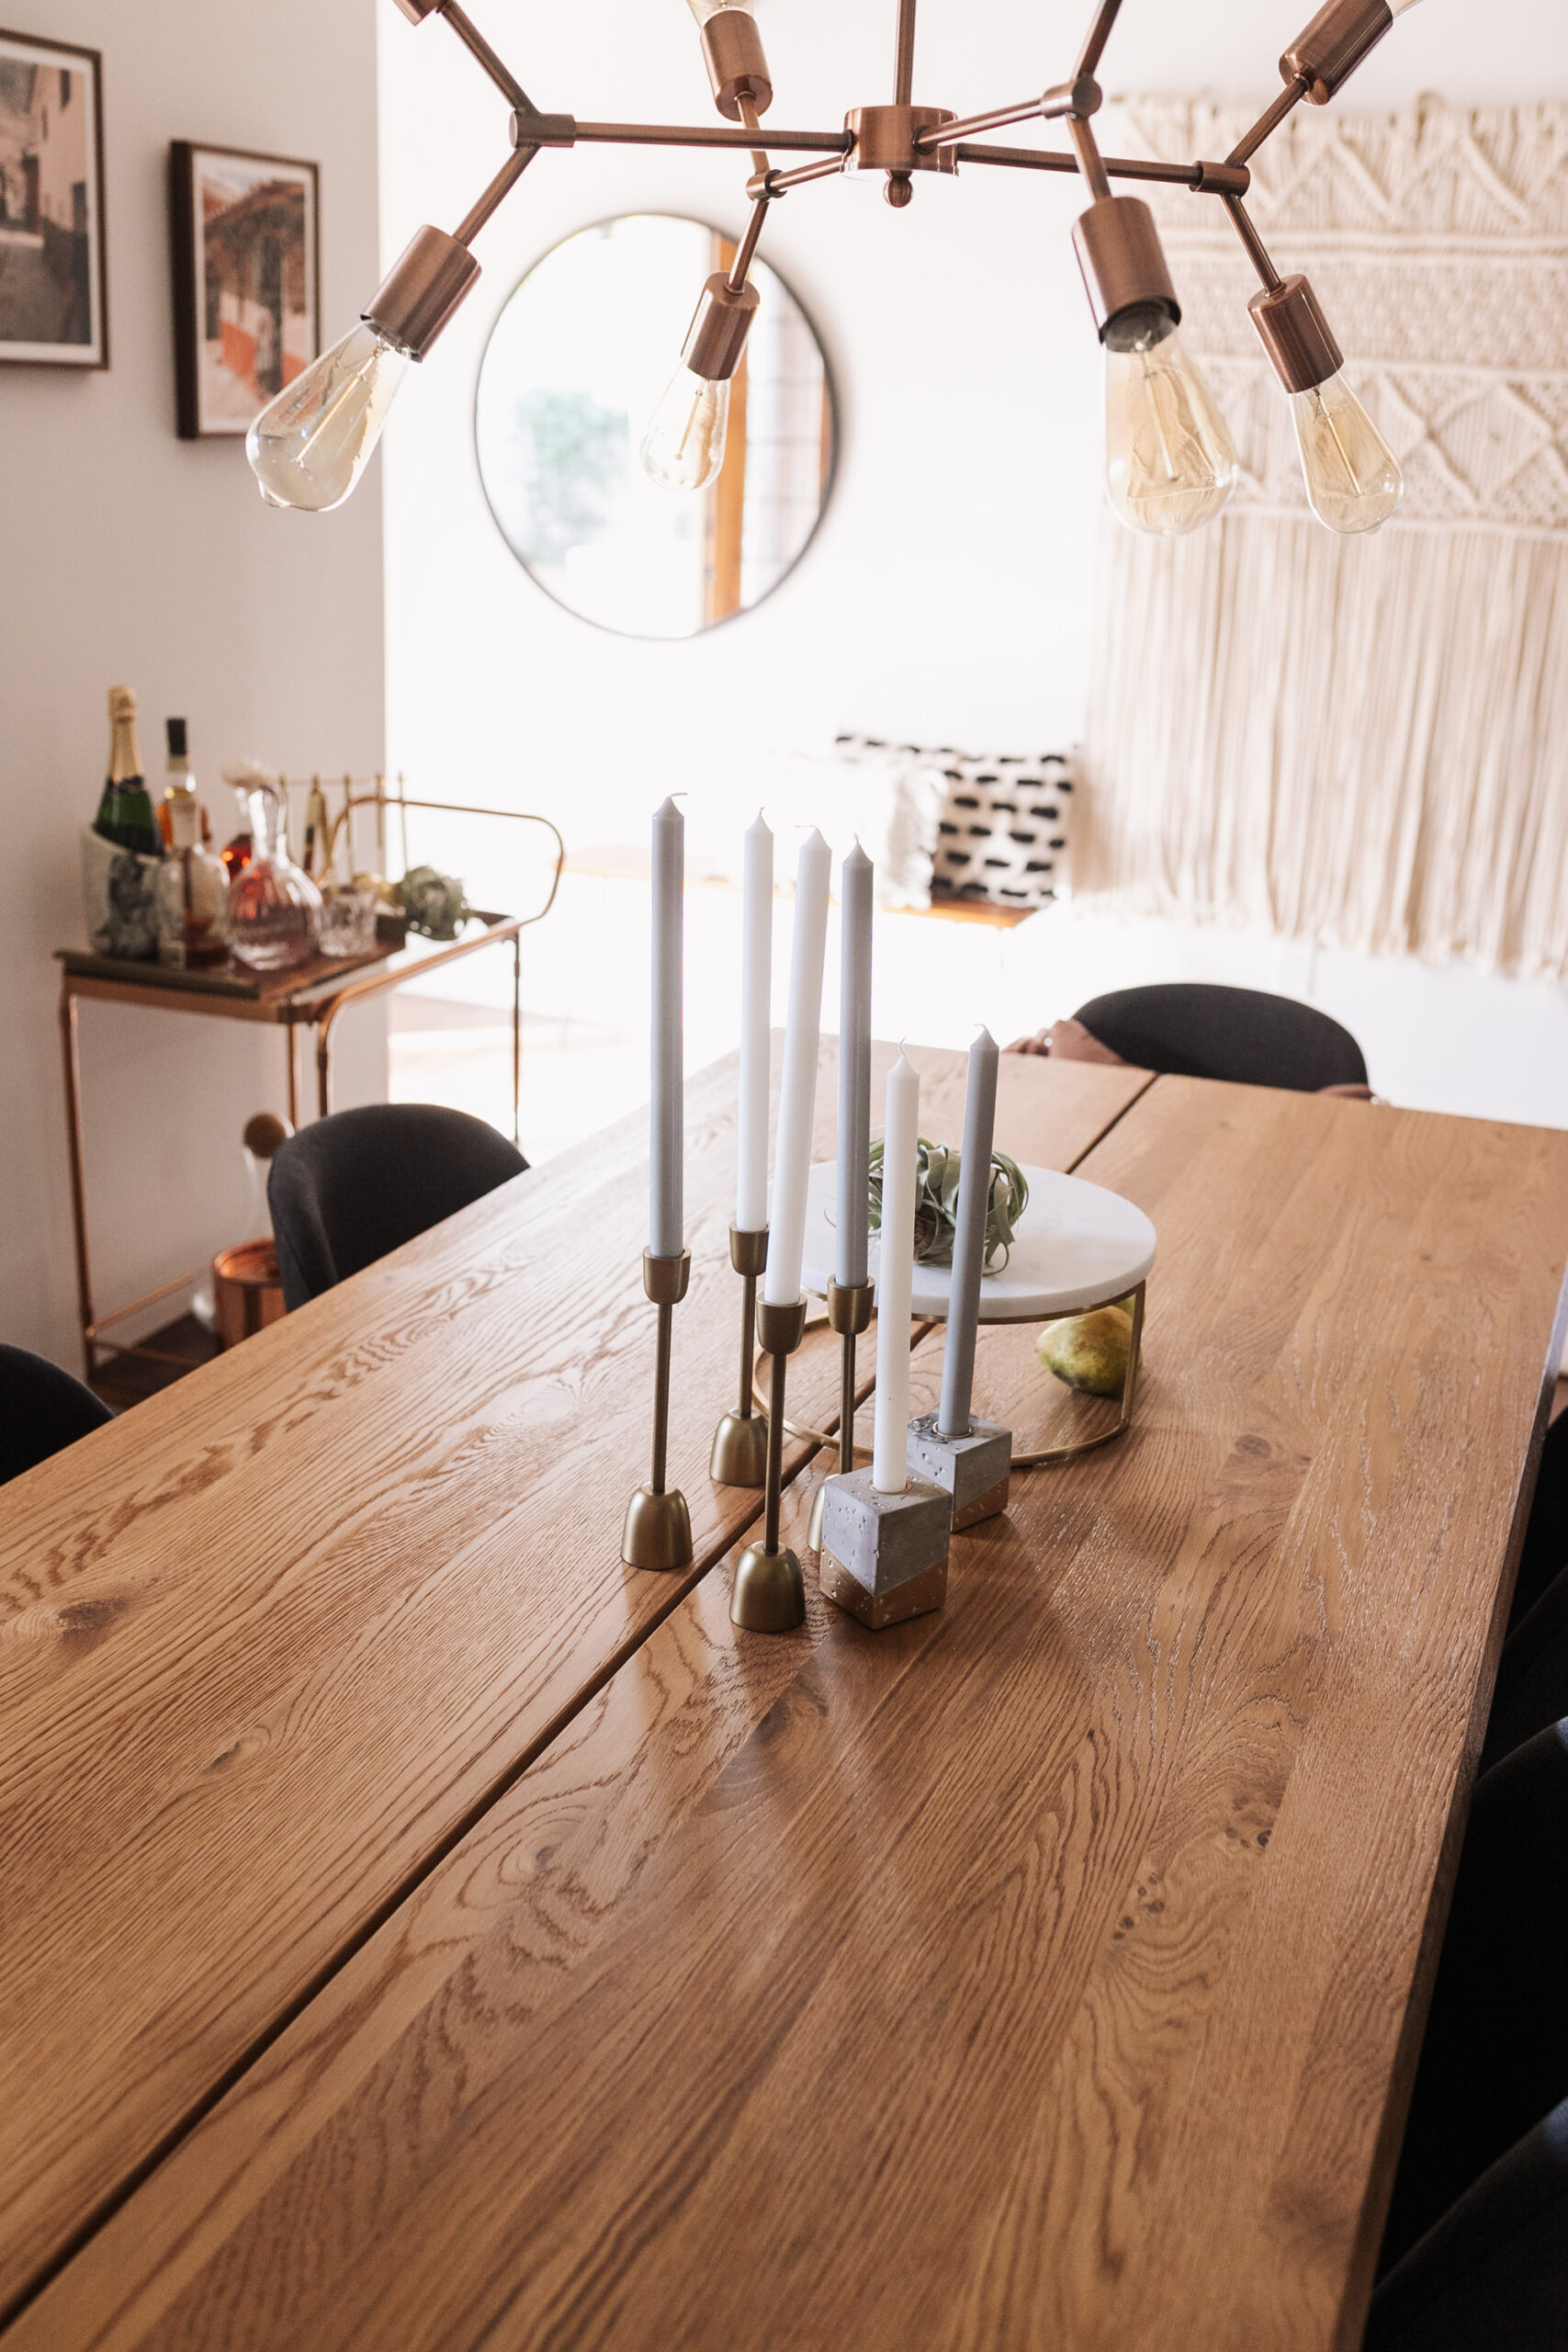 beautiful solid oak extendable dining table from article. #ourarticle #theldlhome #diningroom